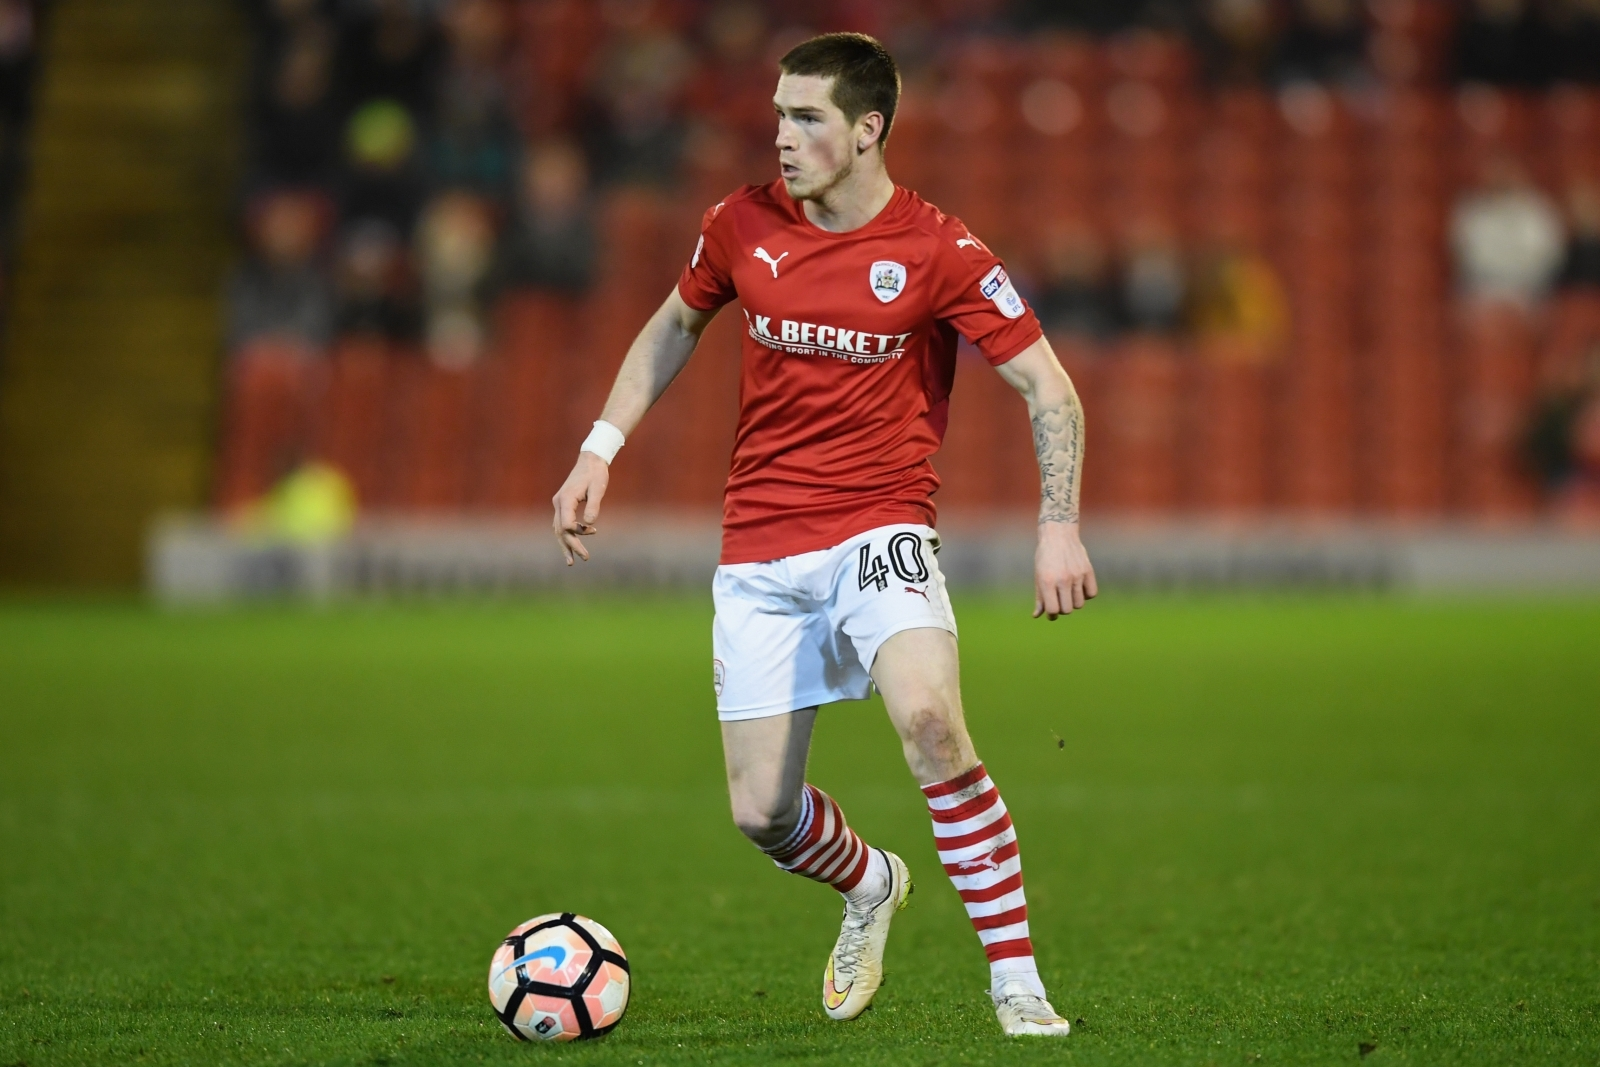 Bristol City confirm the signing of Ryan Kent on loan from Liverpool